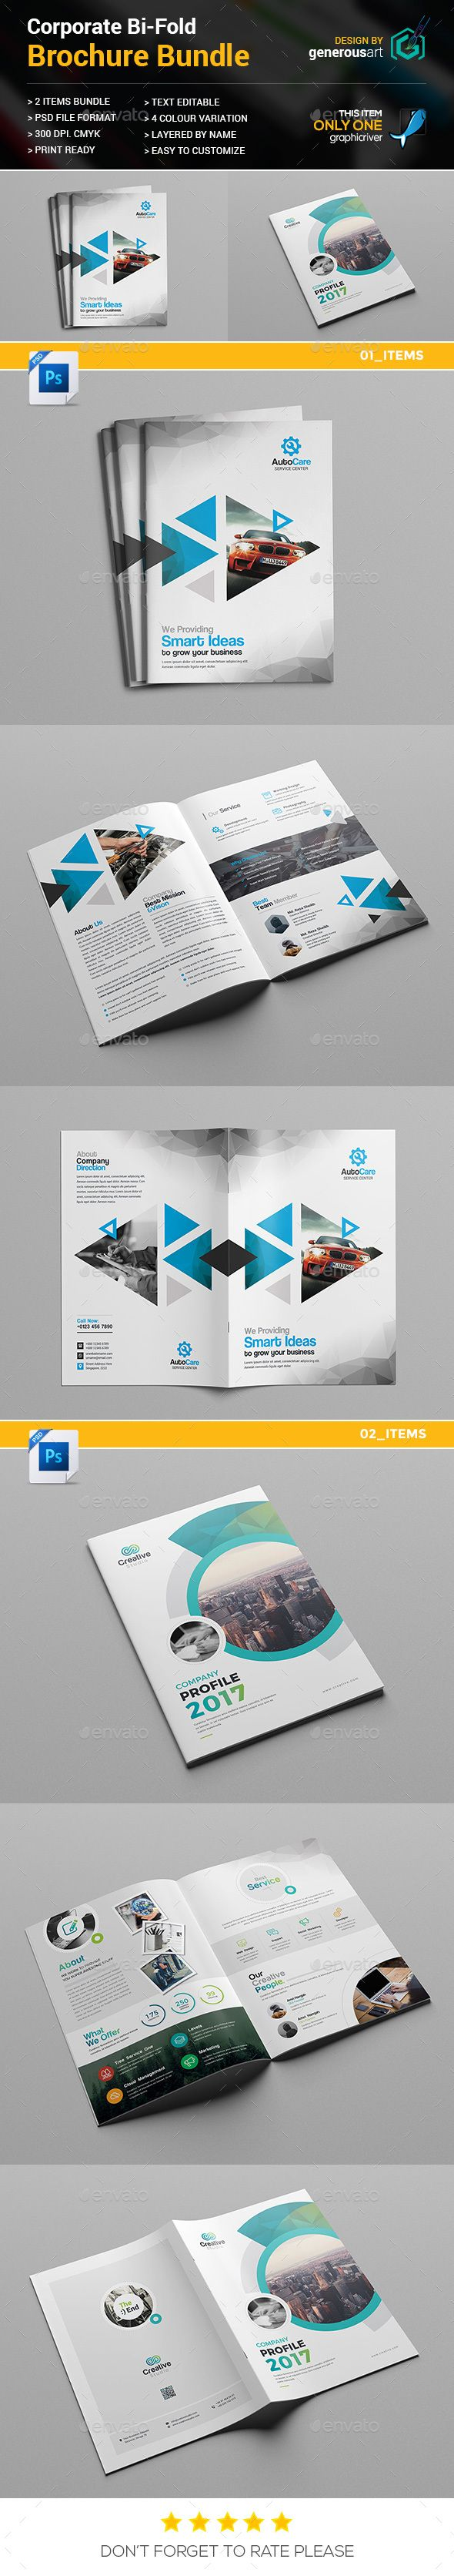 BiFold Brochure Bundle  In   Brochure Template Brochure Size